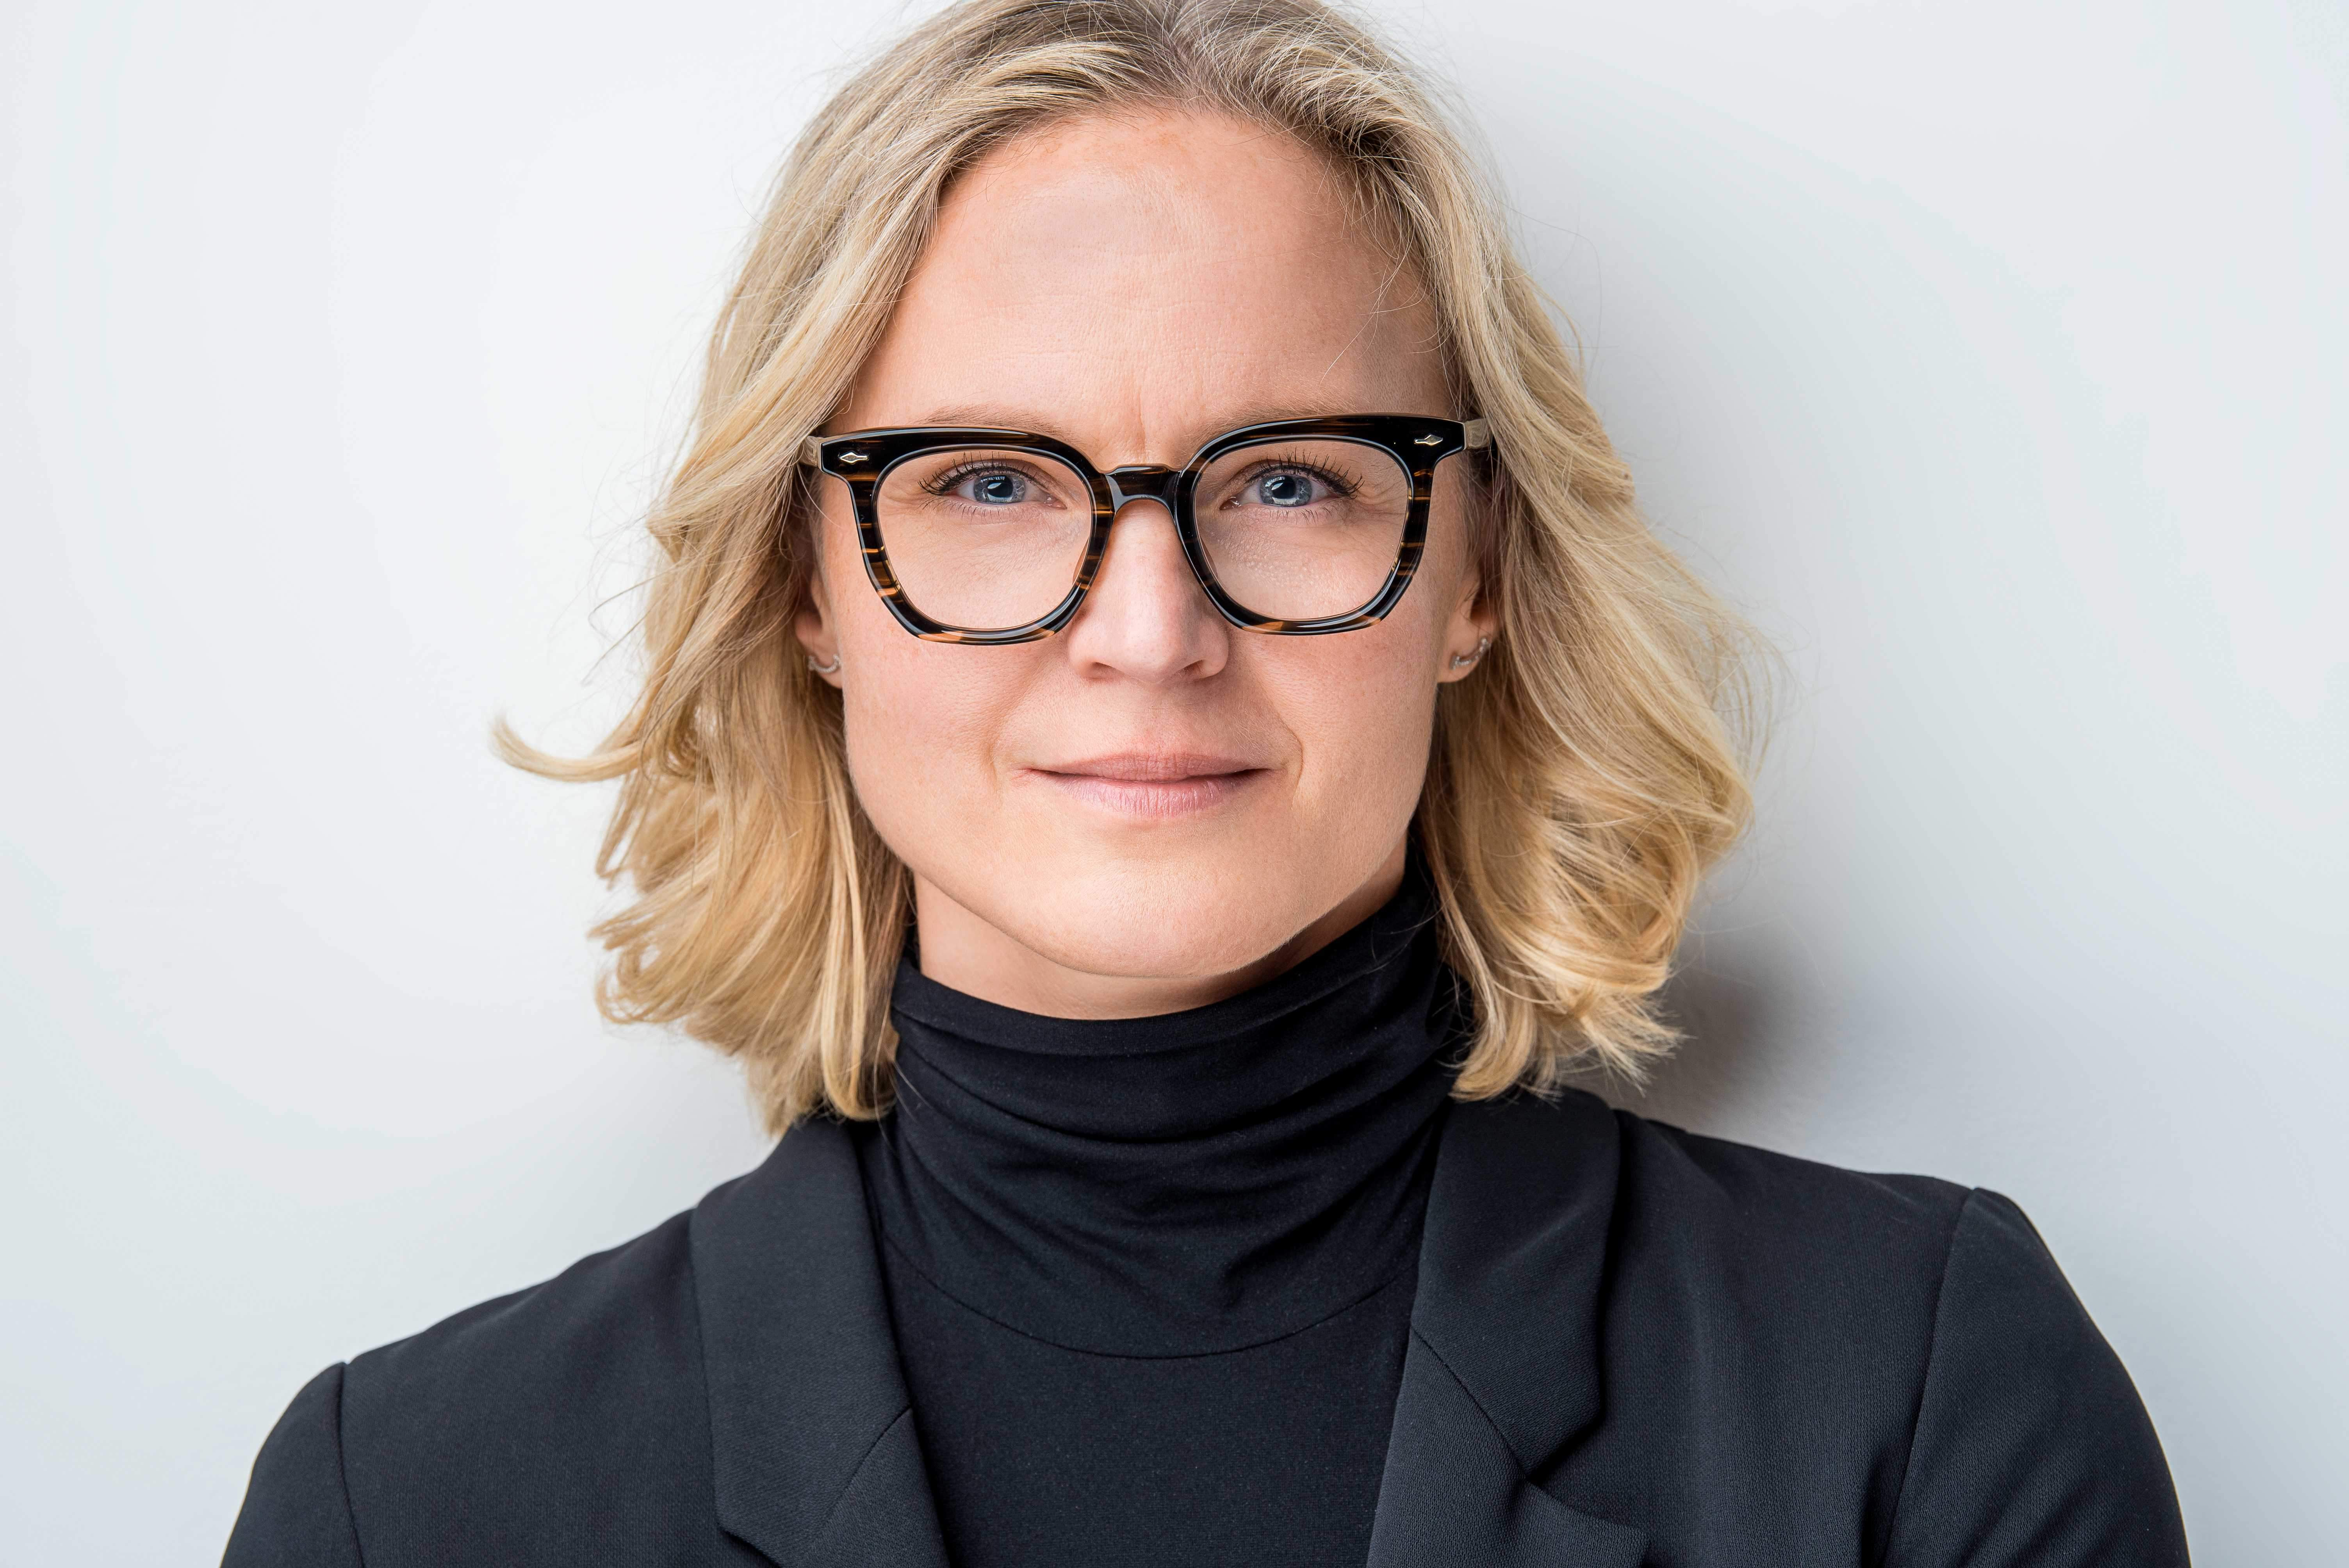 Businessprofilerin, Business Profiler, Businessprofiler, Corinna Jahn